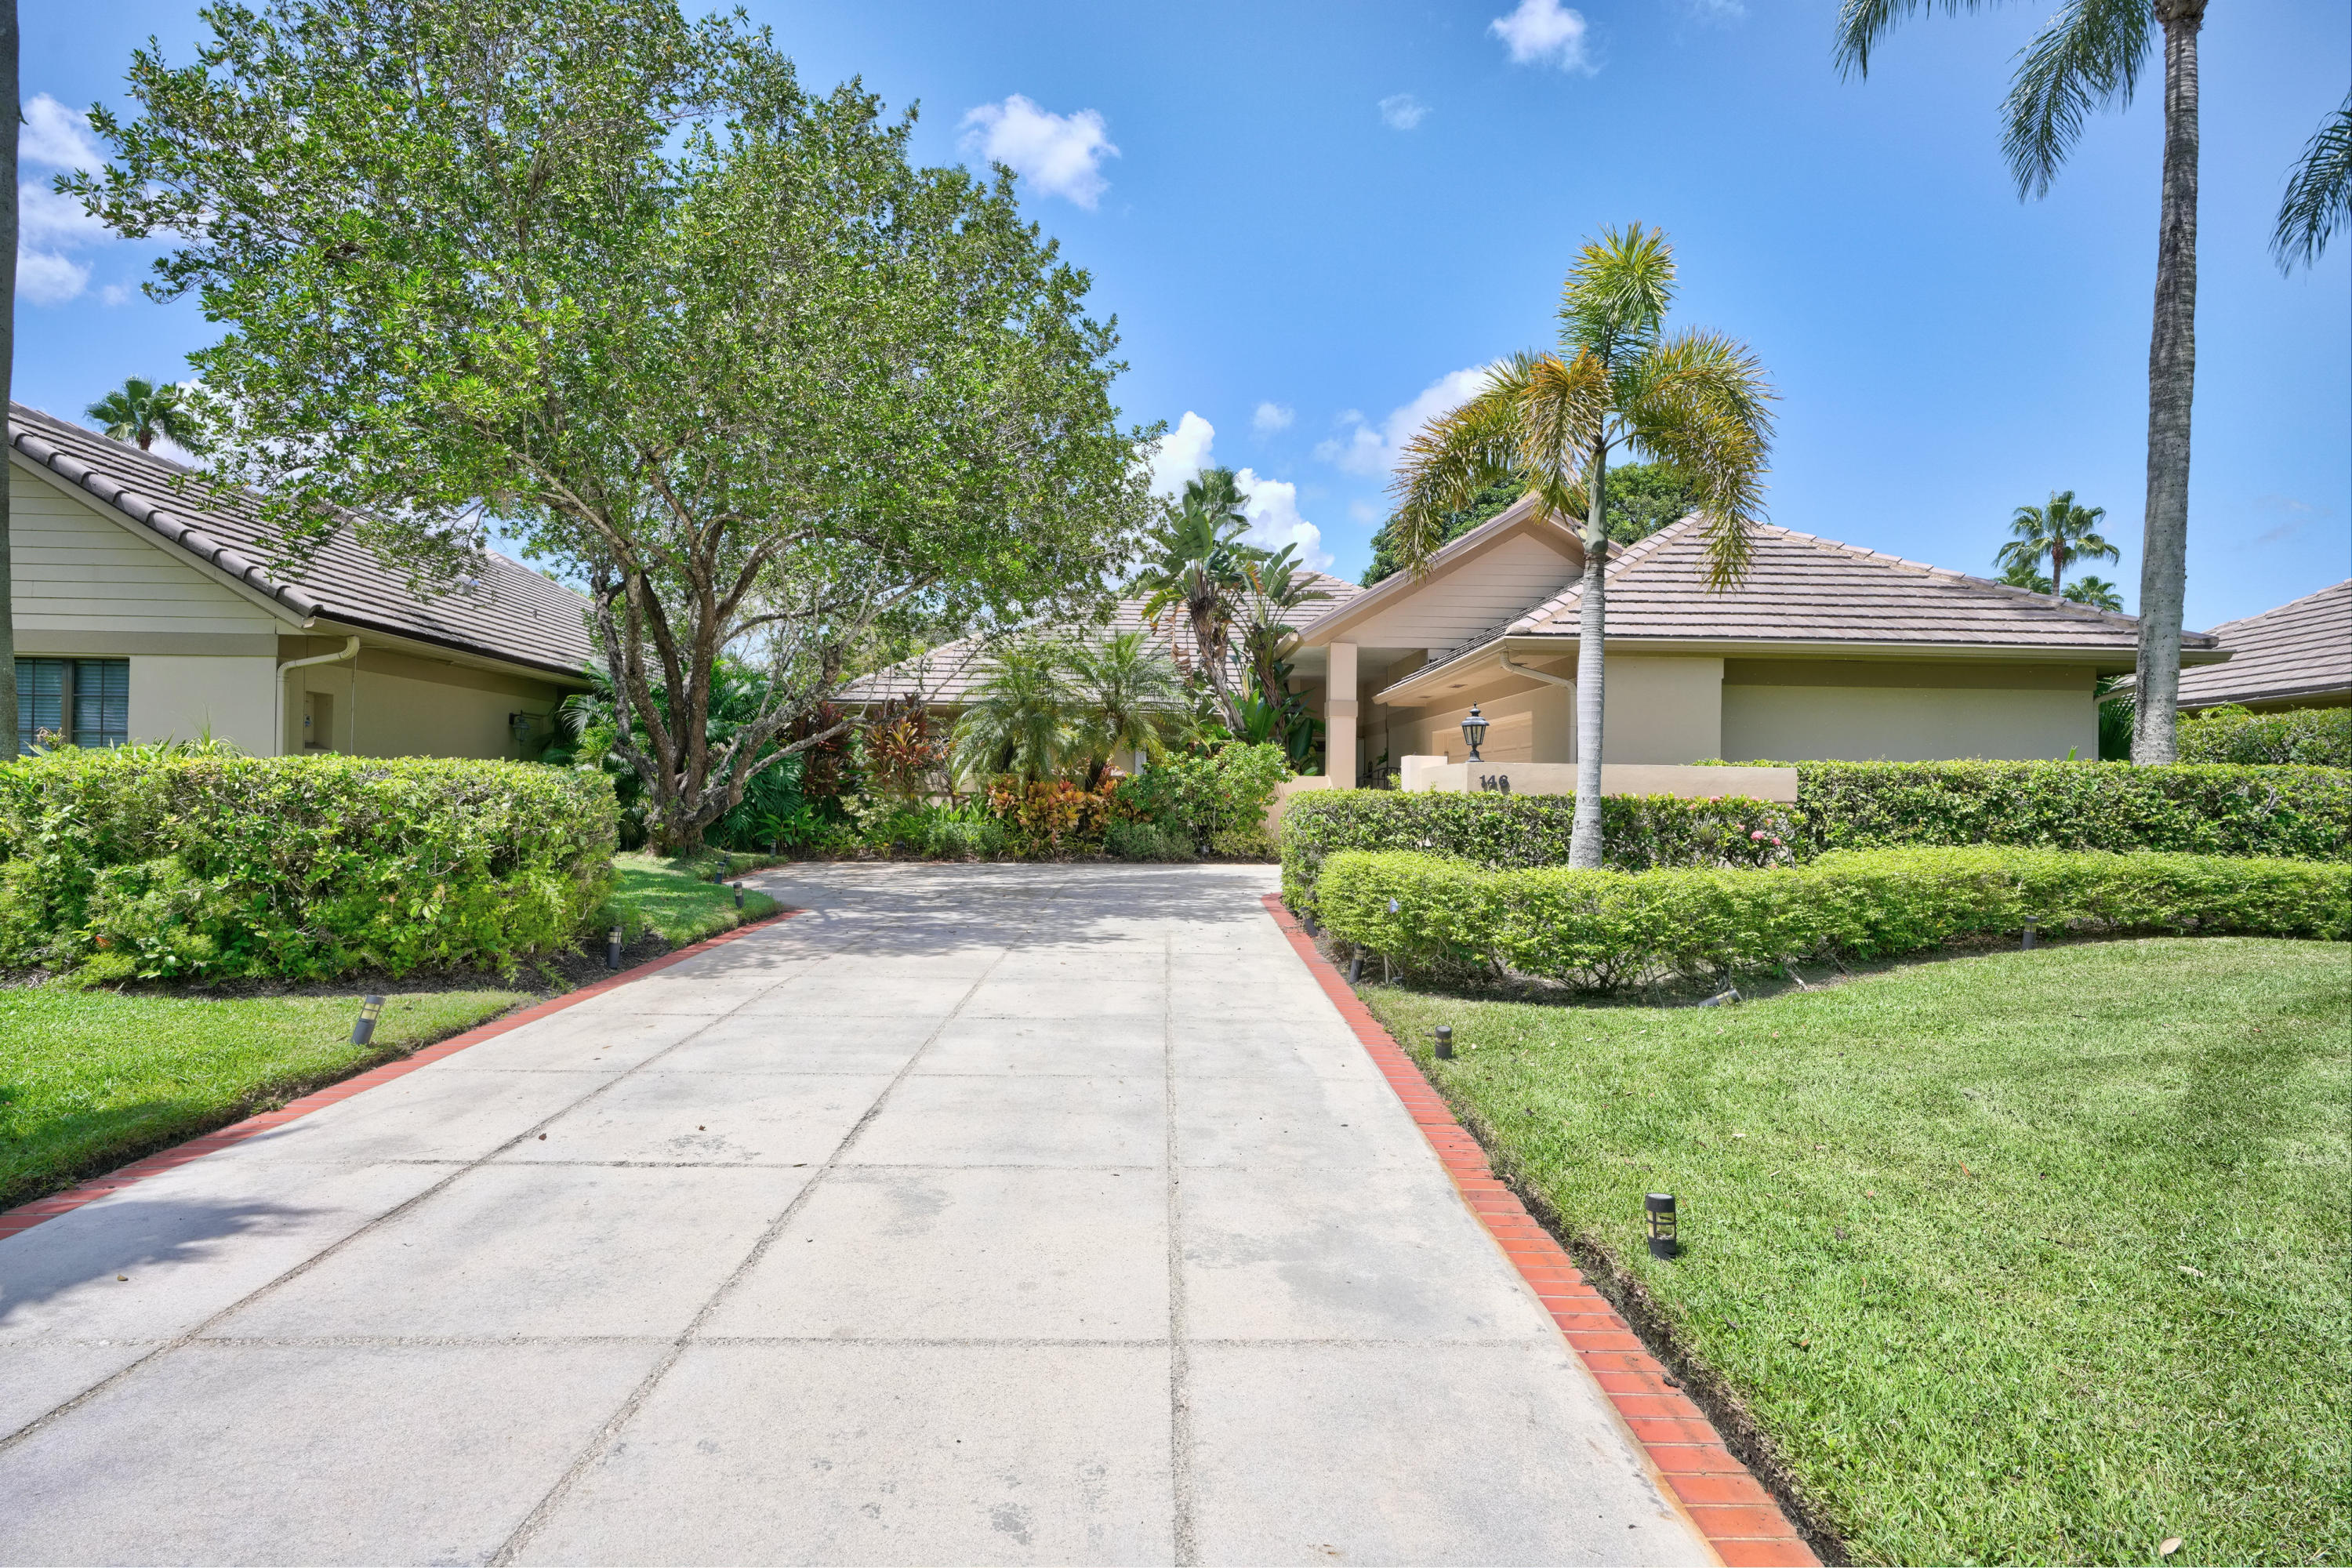 146 Coventry Place, Palm Beach Gardens, Florida 33418, 3 Bedrooms Bedrooms, ,2.1 BathroomsBathrooms,A,Single family,Coventry,RX-10559919